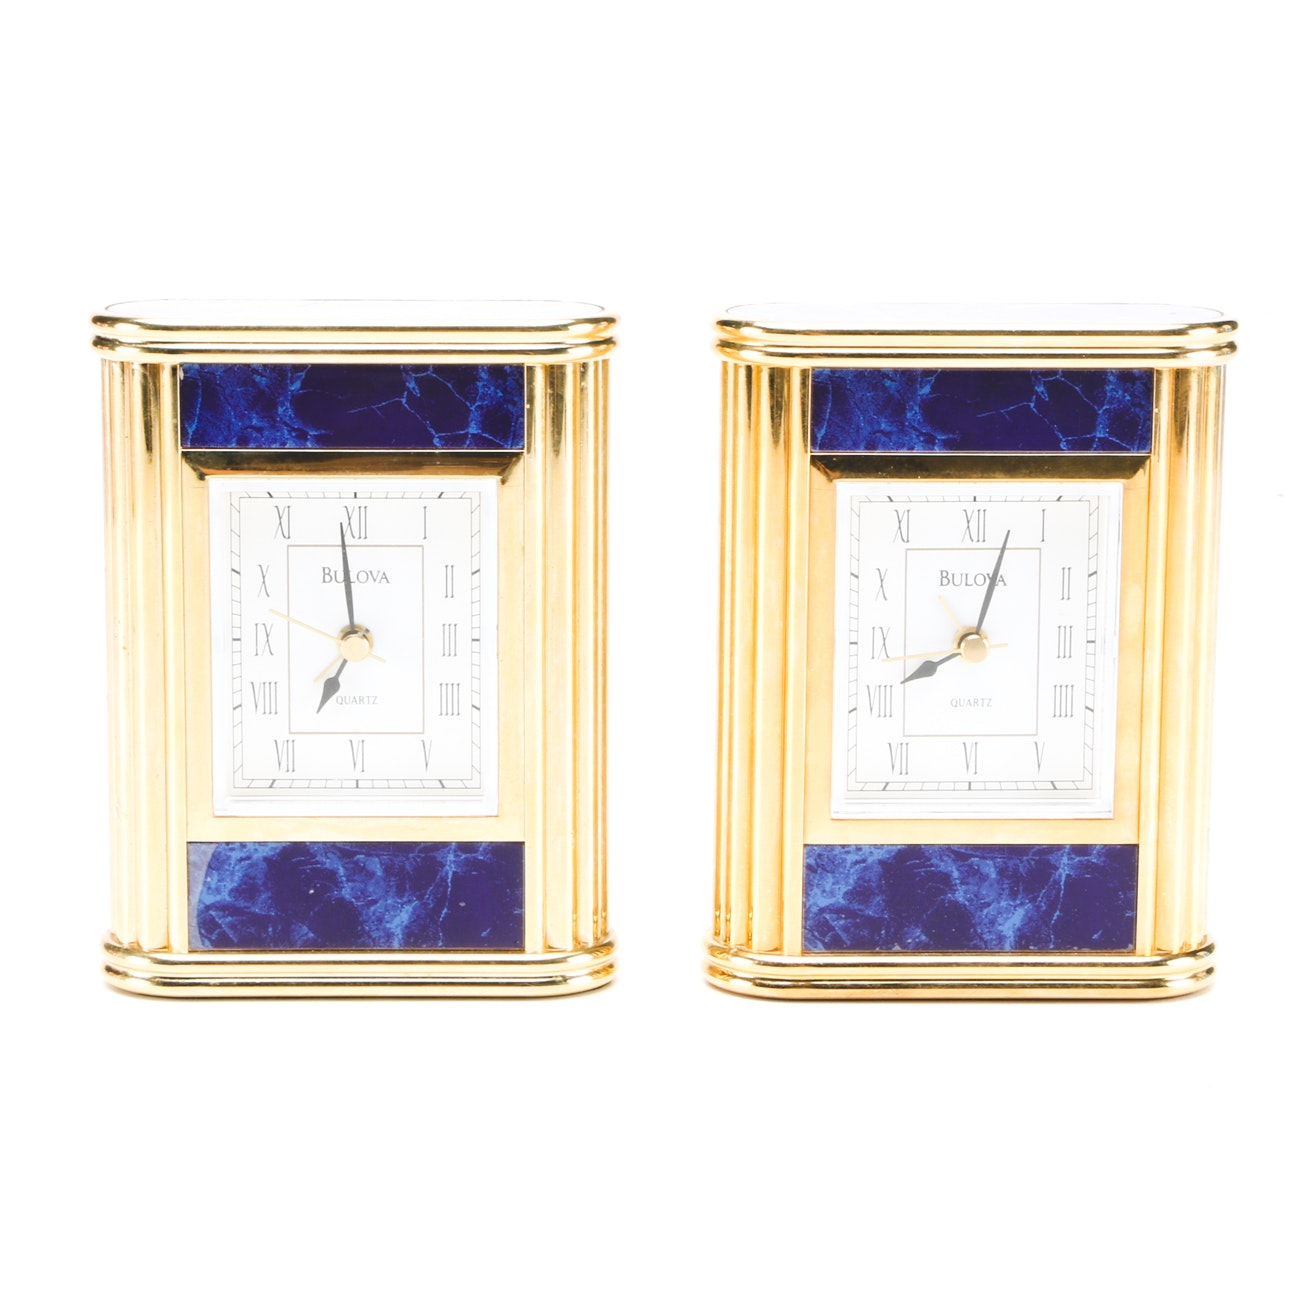 Pair of Shelf Clocks by Bulova